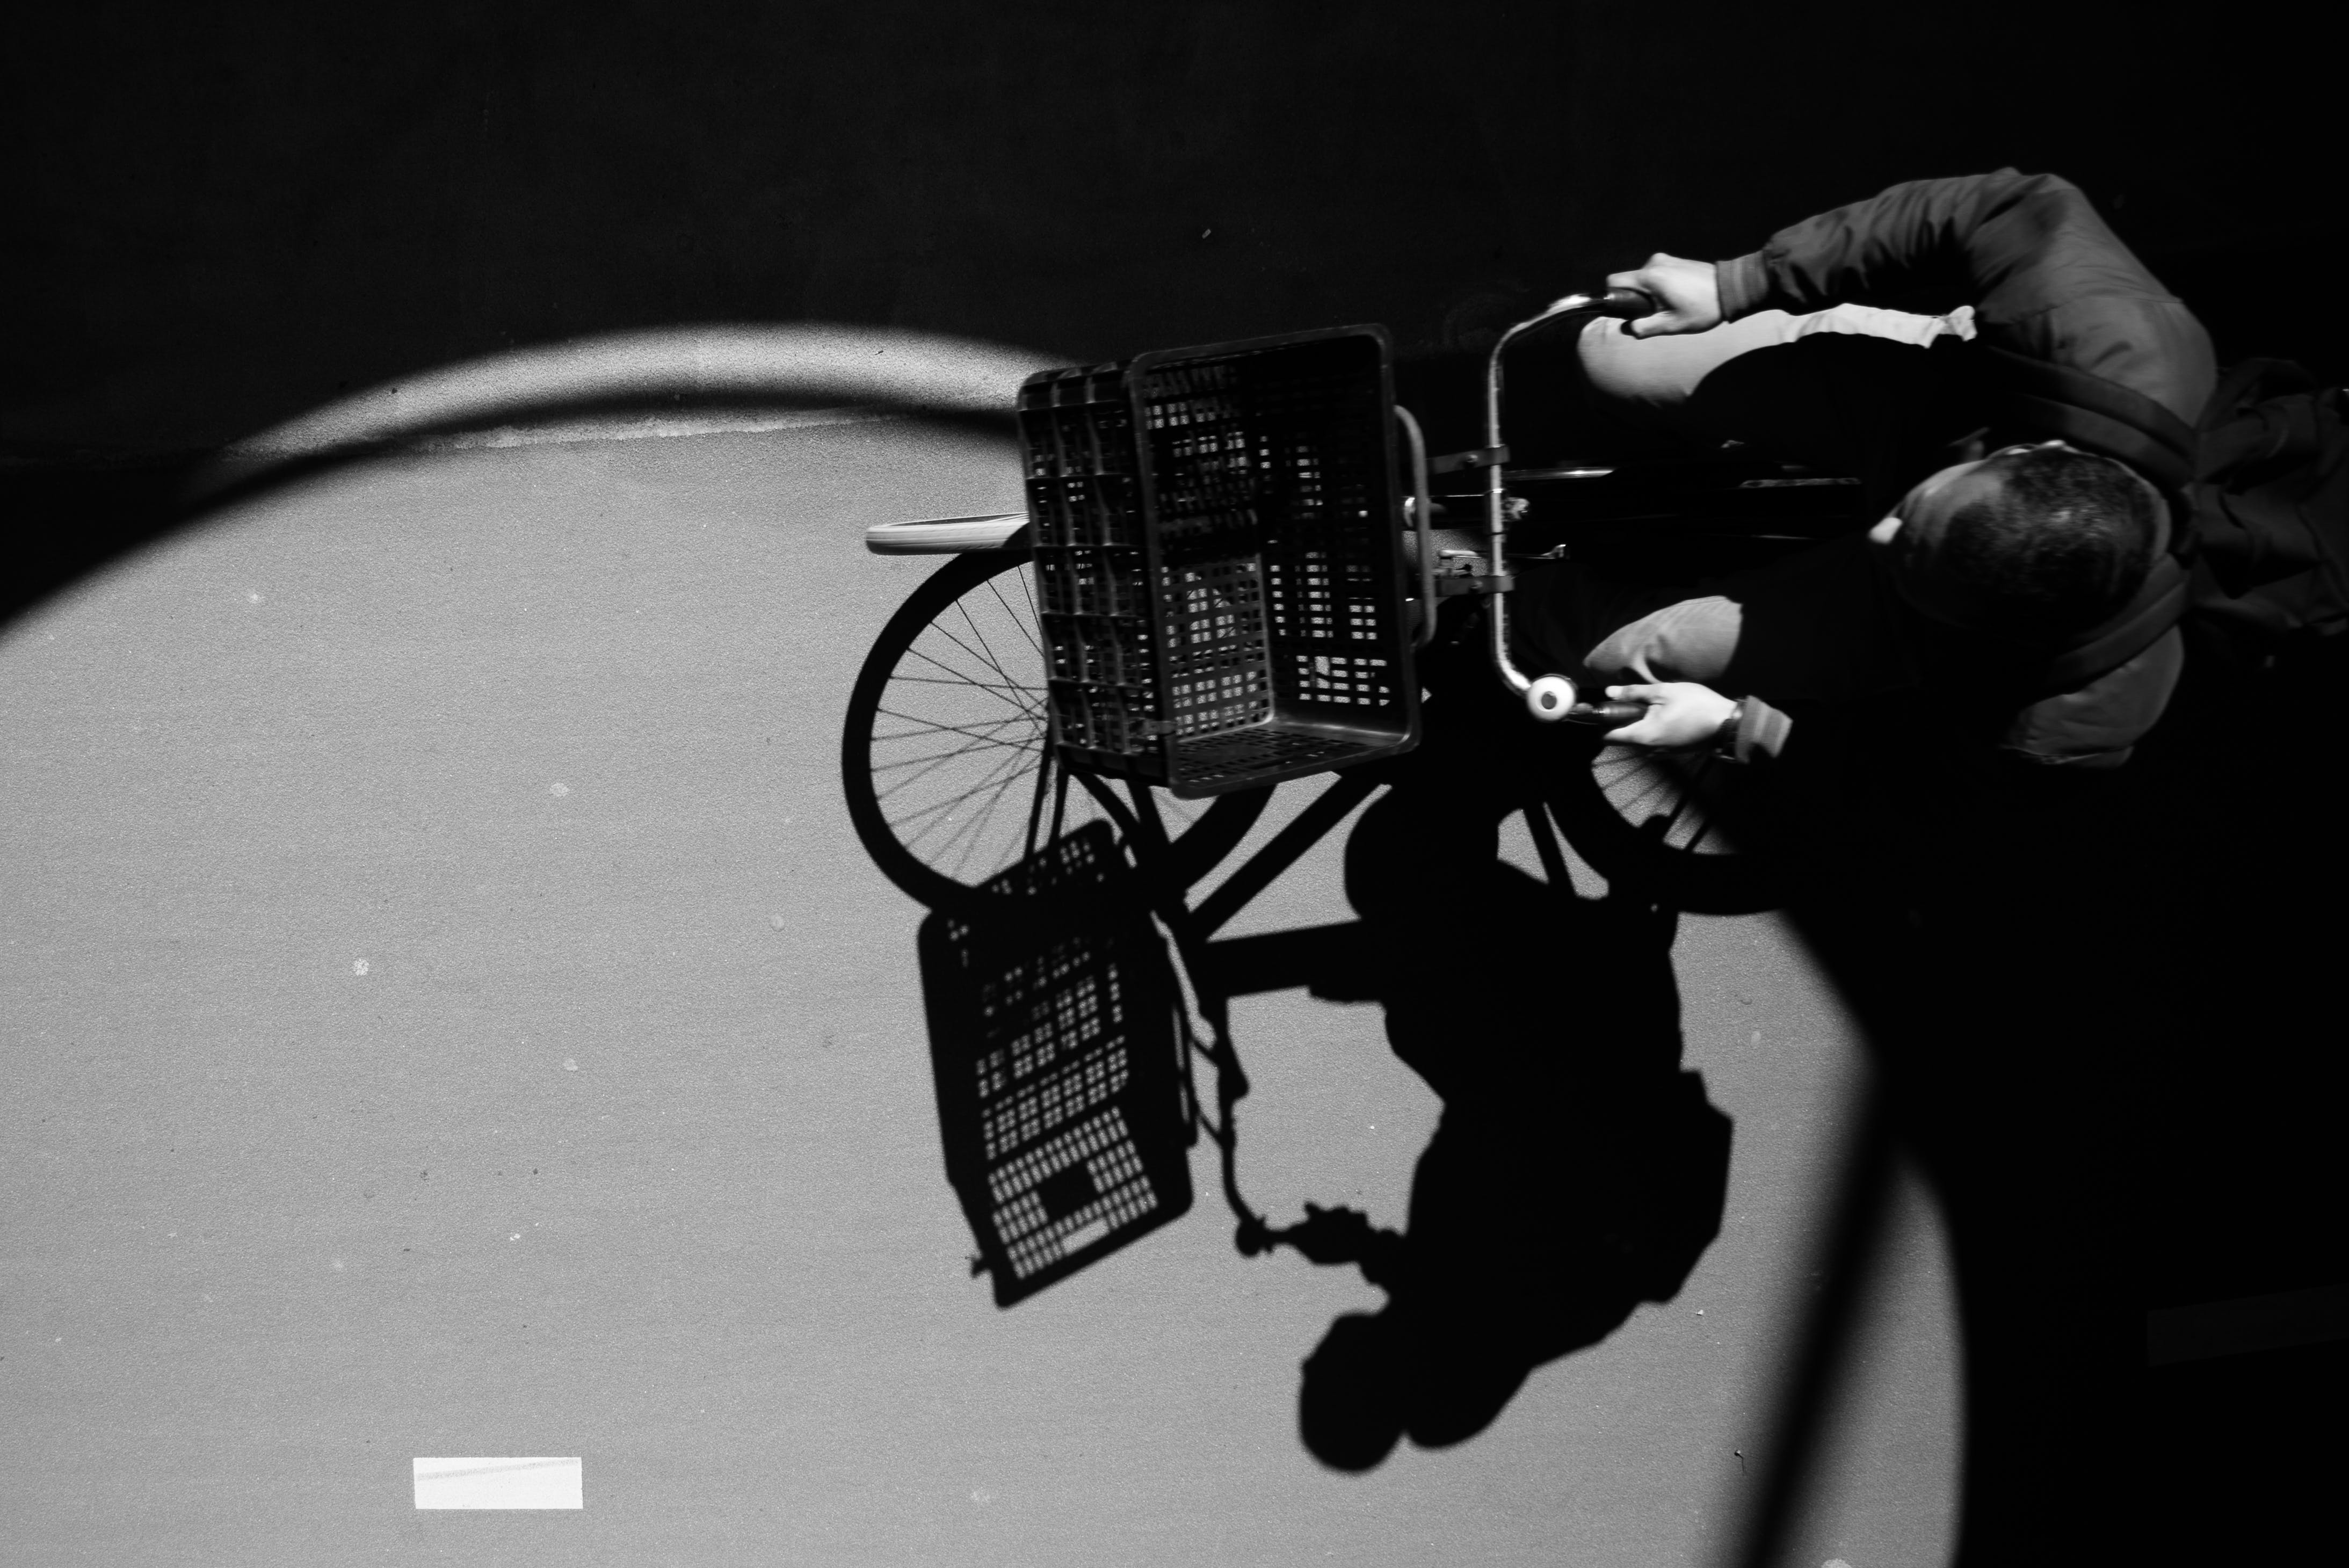 Gray Scale Photo Ofman on City Bike